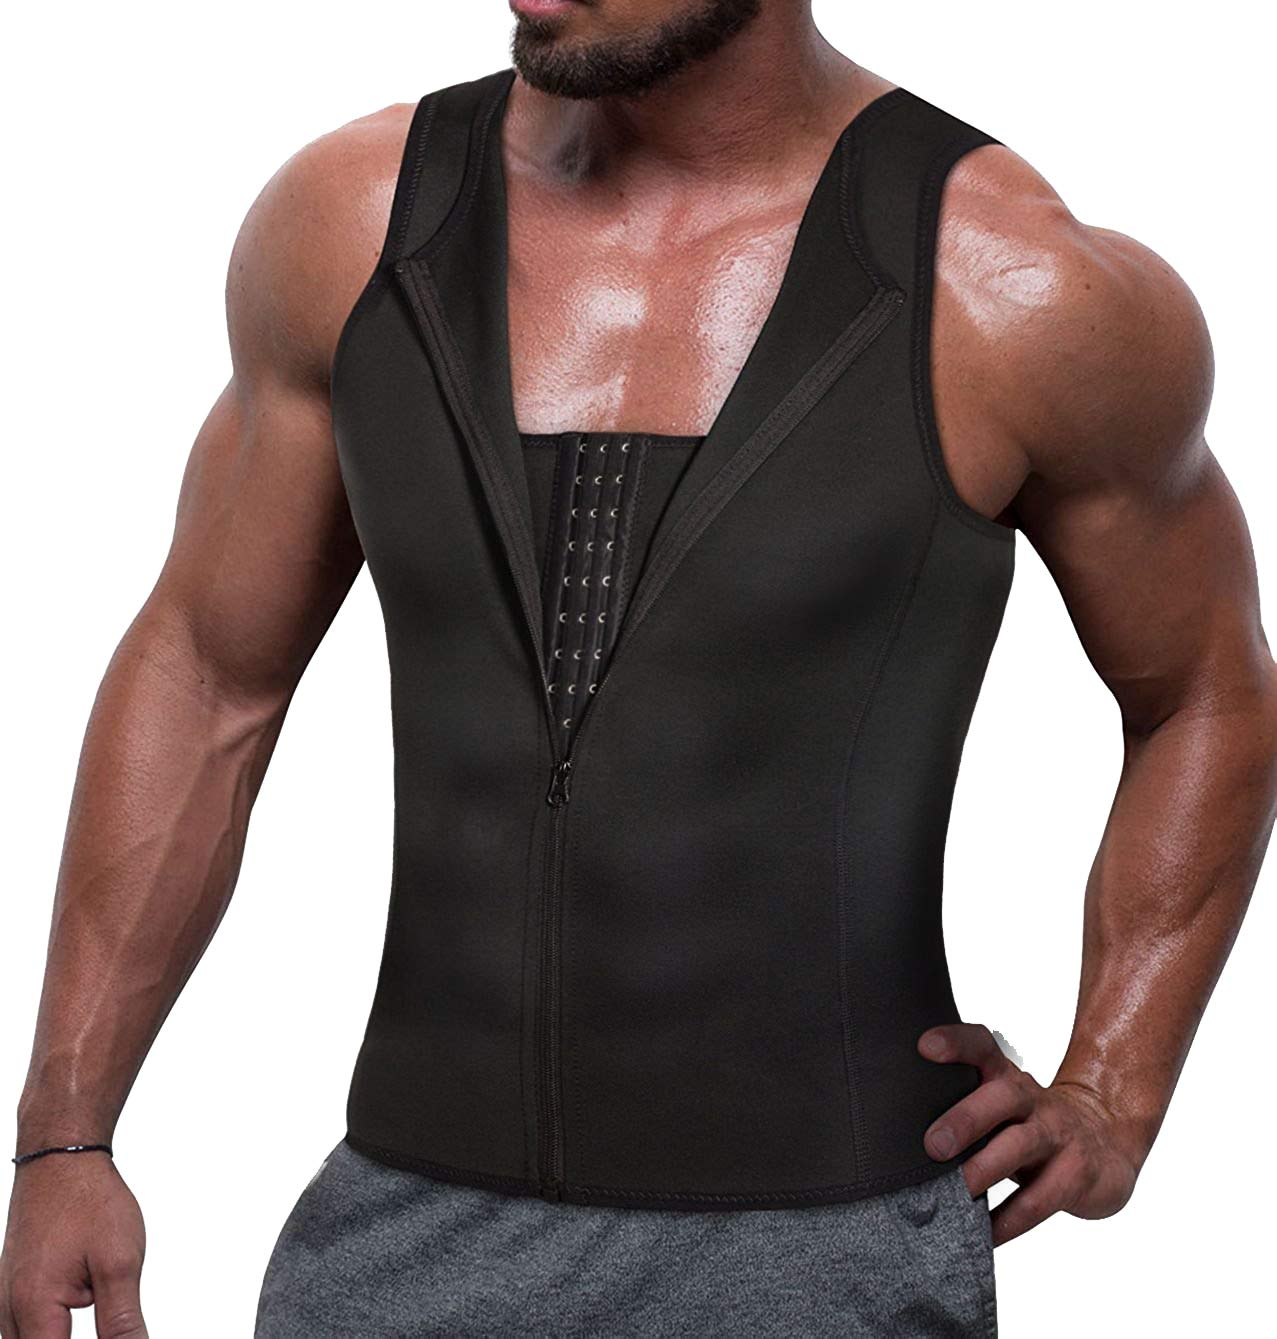 c4e2fc6f6 TAILONG Men Compression Shirt for Body Slimming Tank Top Shaper Tight  Undershirt Tummy Control Girdle product